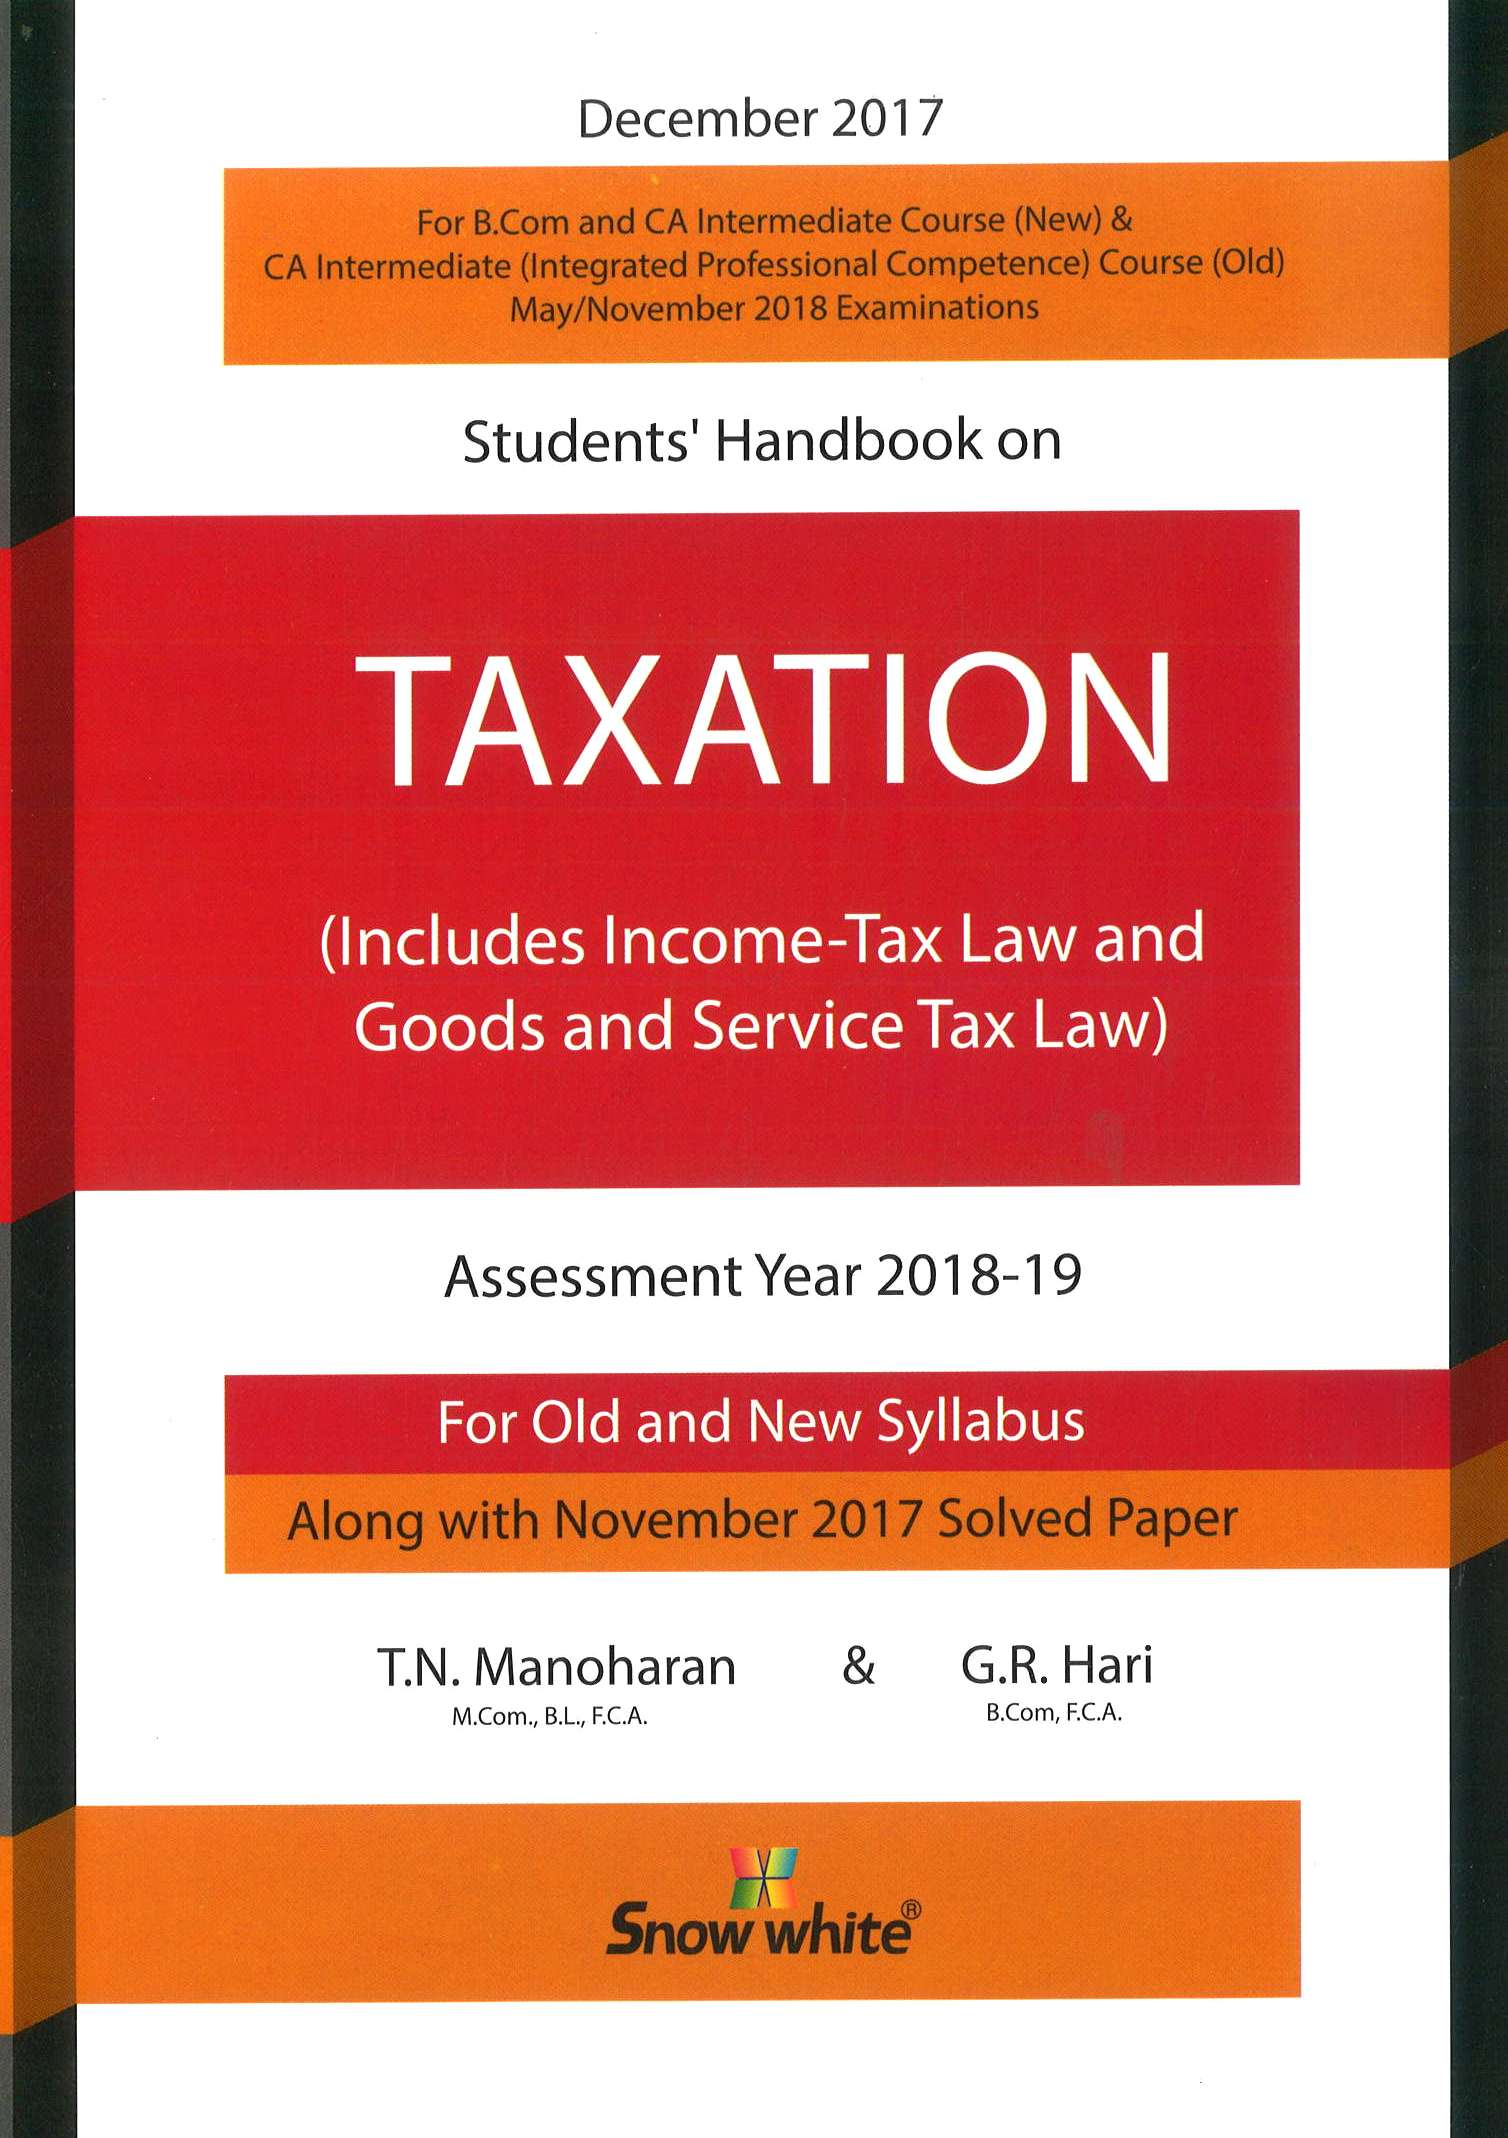 Snow white Student's Handbook on CA Intermediate IPCC Taxation (Includes income tax law and Goods and Service Tax) Old and New Syllabus By T N Manoharan & G R Hari Applicable for May 2018 Exam 31st Edition December 2017